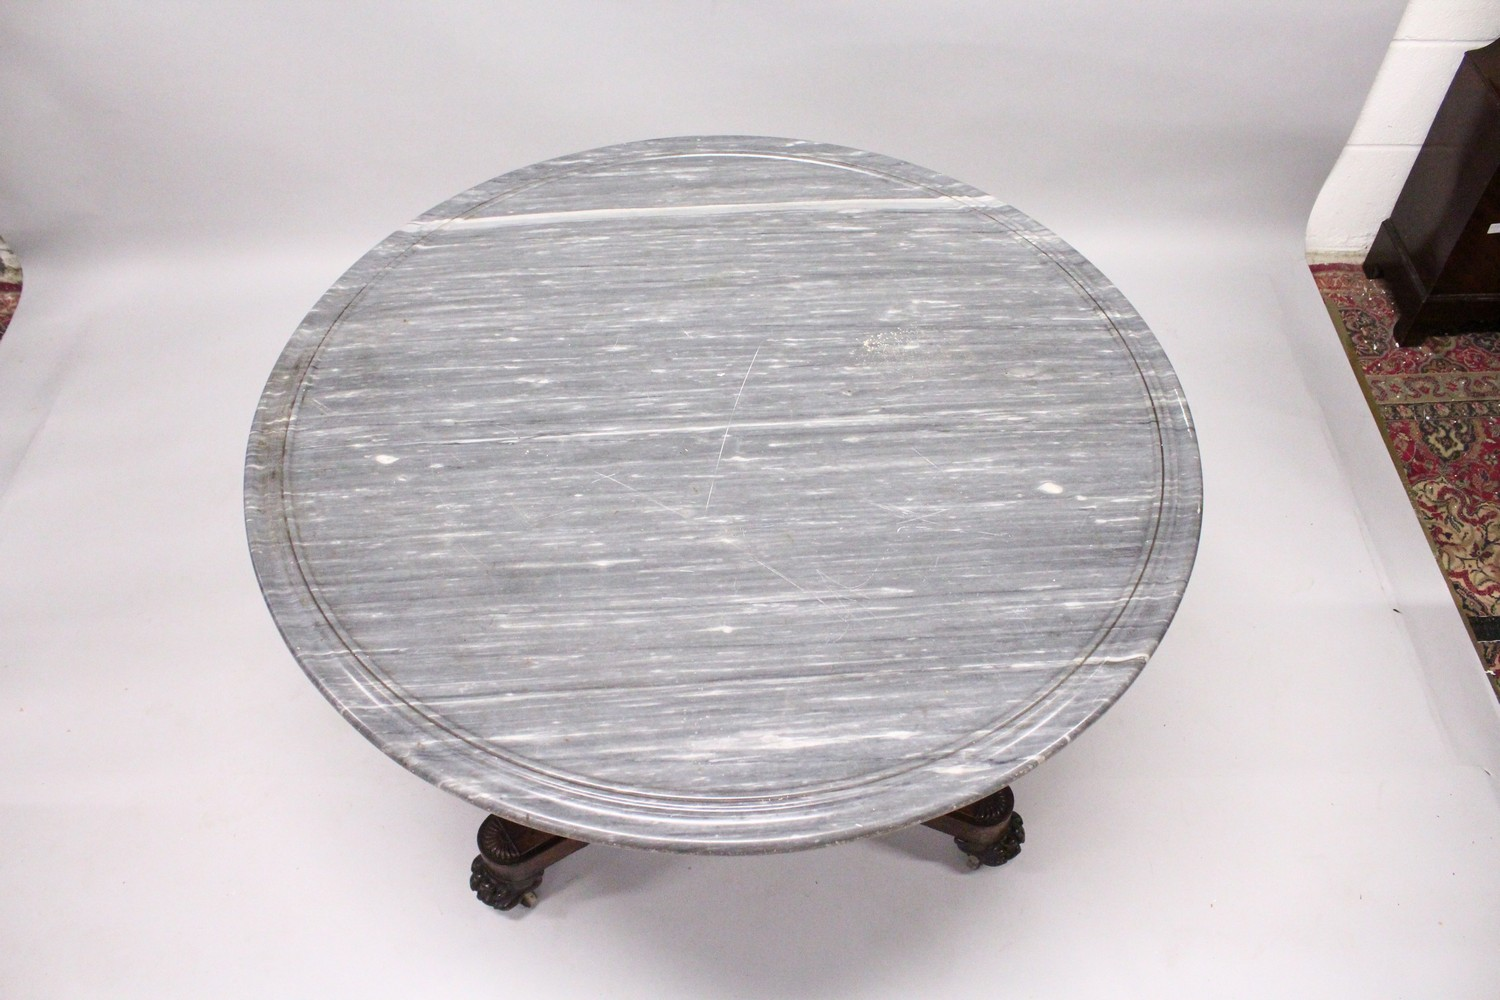 A 19TH CENTURY ROSEWOOD AND GREY MARBLE CIRCULAR CENTRE TABLE, with veined grey marble top, plain - Image 2 of 4